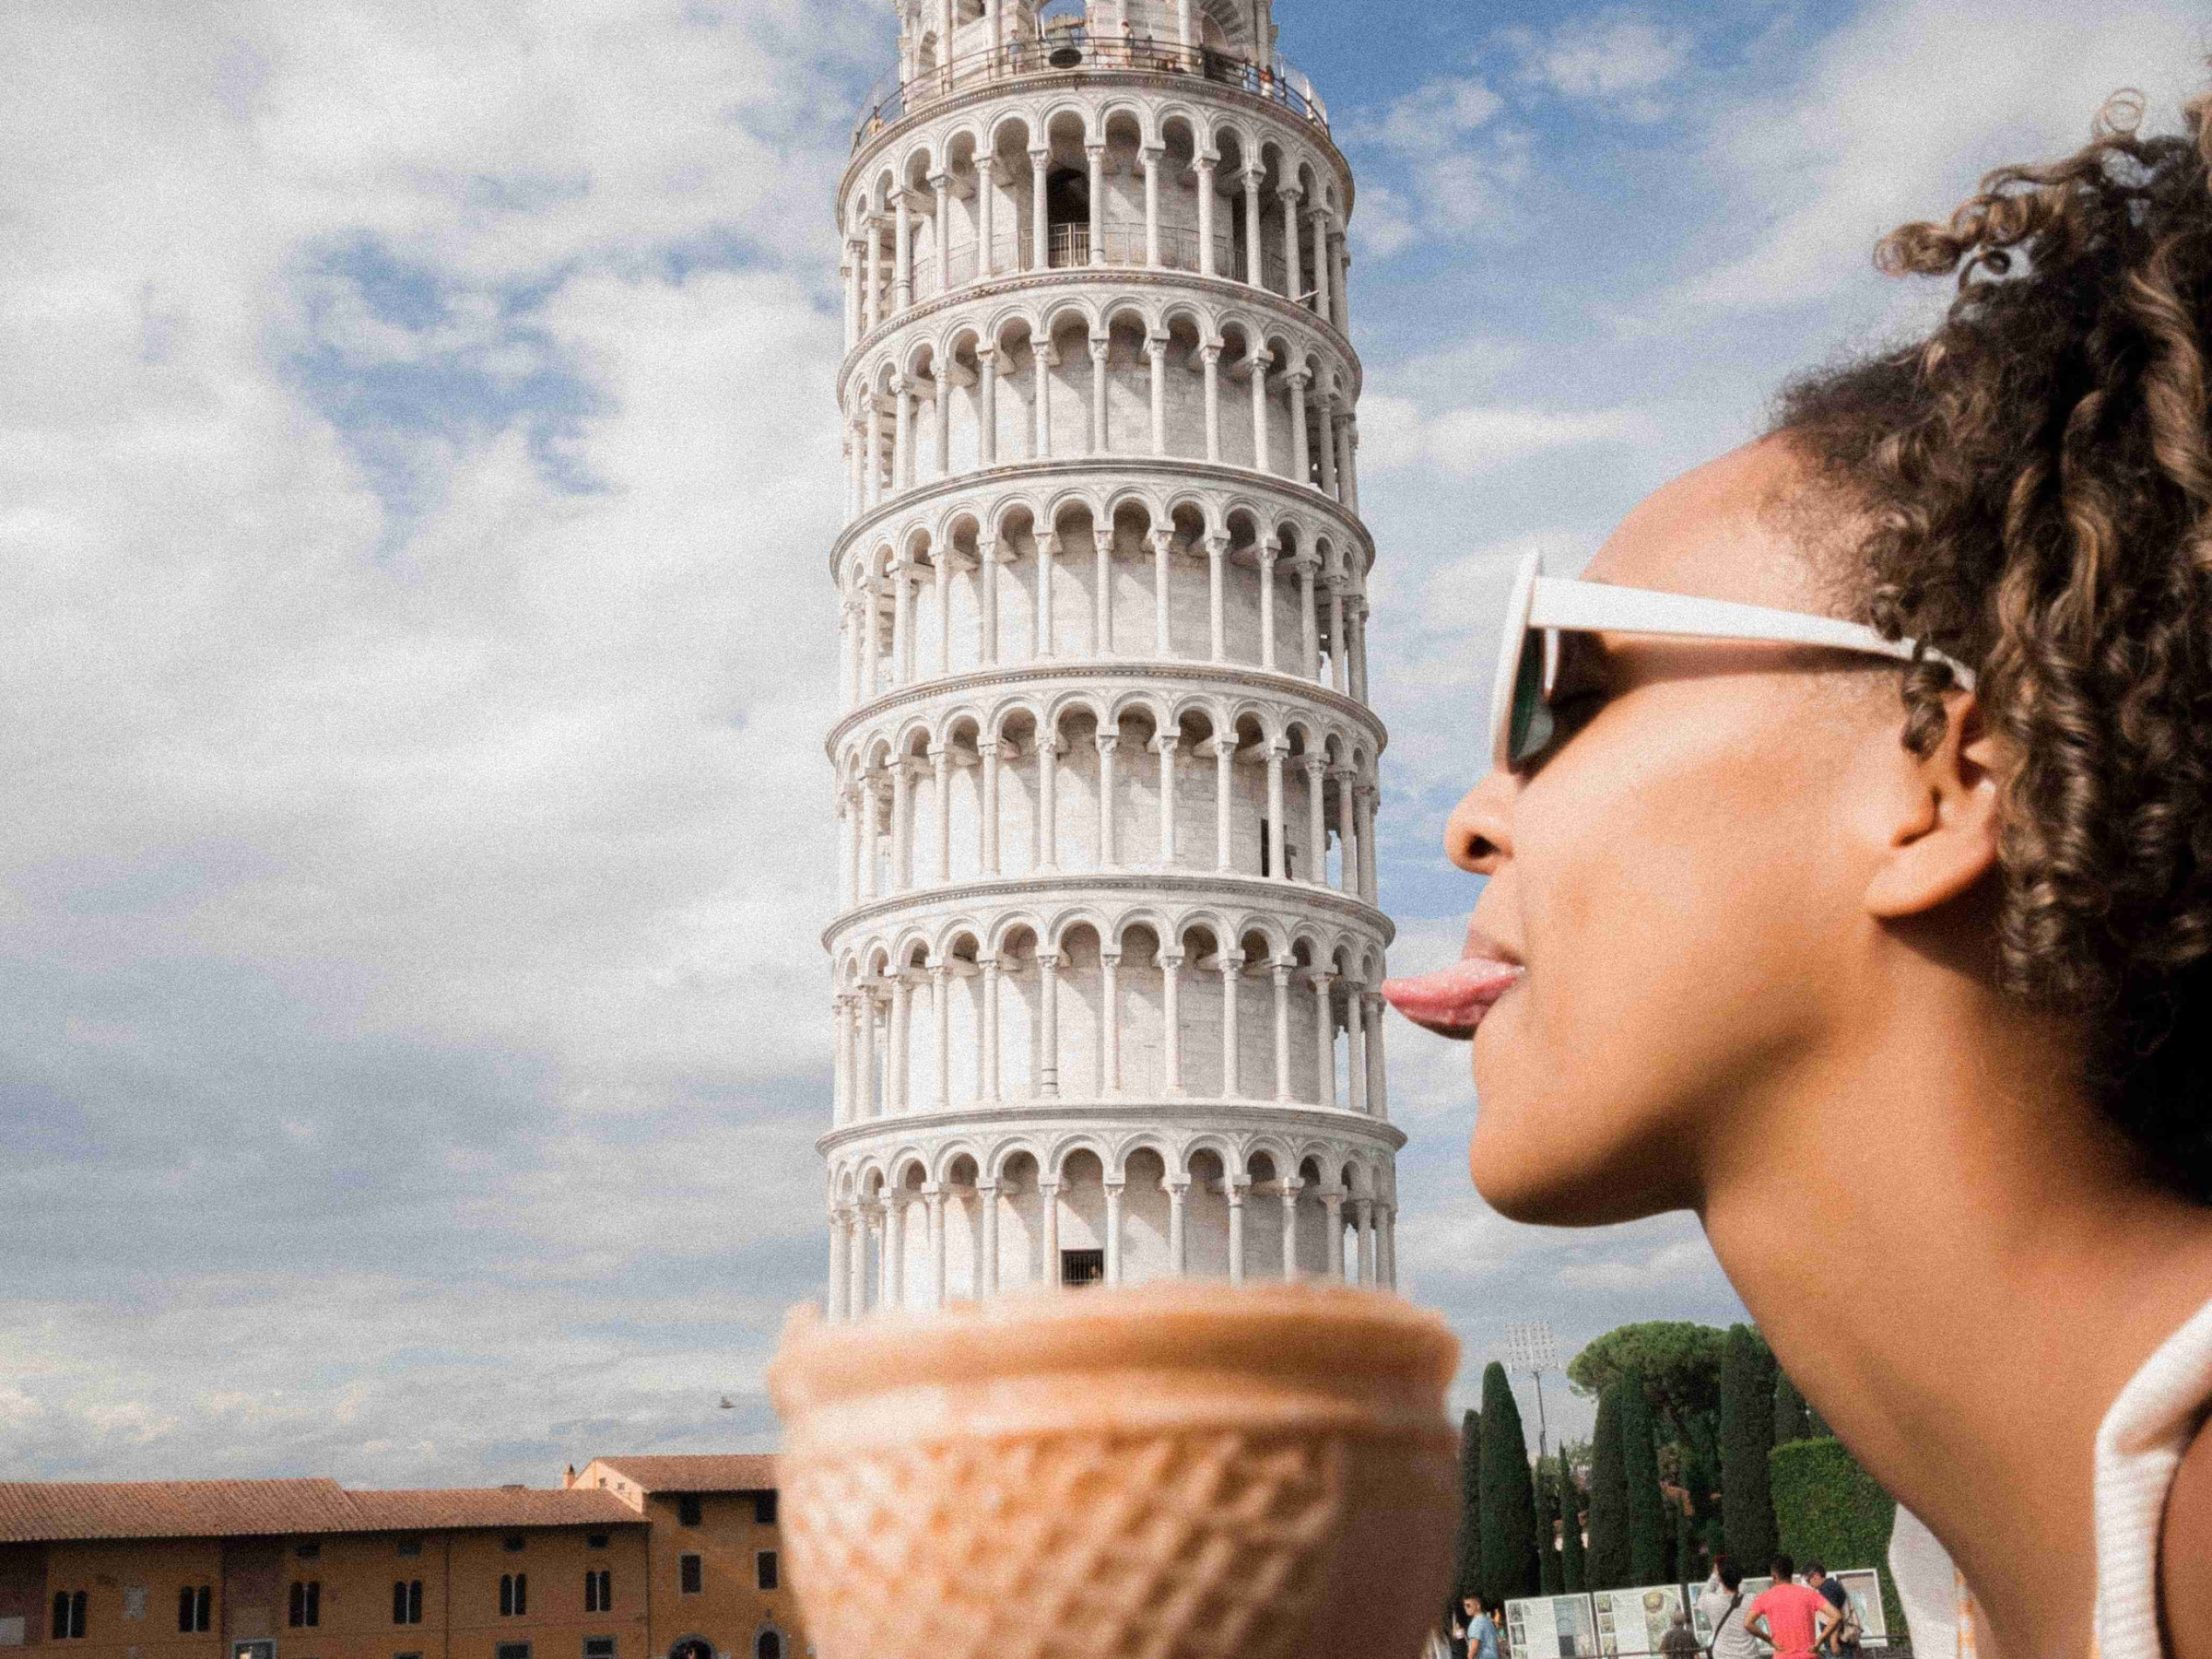 Pisa; leaning tower of Pisa; Italy; ice-cream, girl; girl licking ice-cream; ice-cream cone; lick; funny; humour; humor; tower; girl in Pisa; girl; woman; travel; Europe;